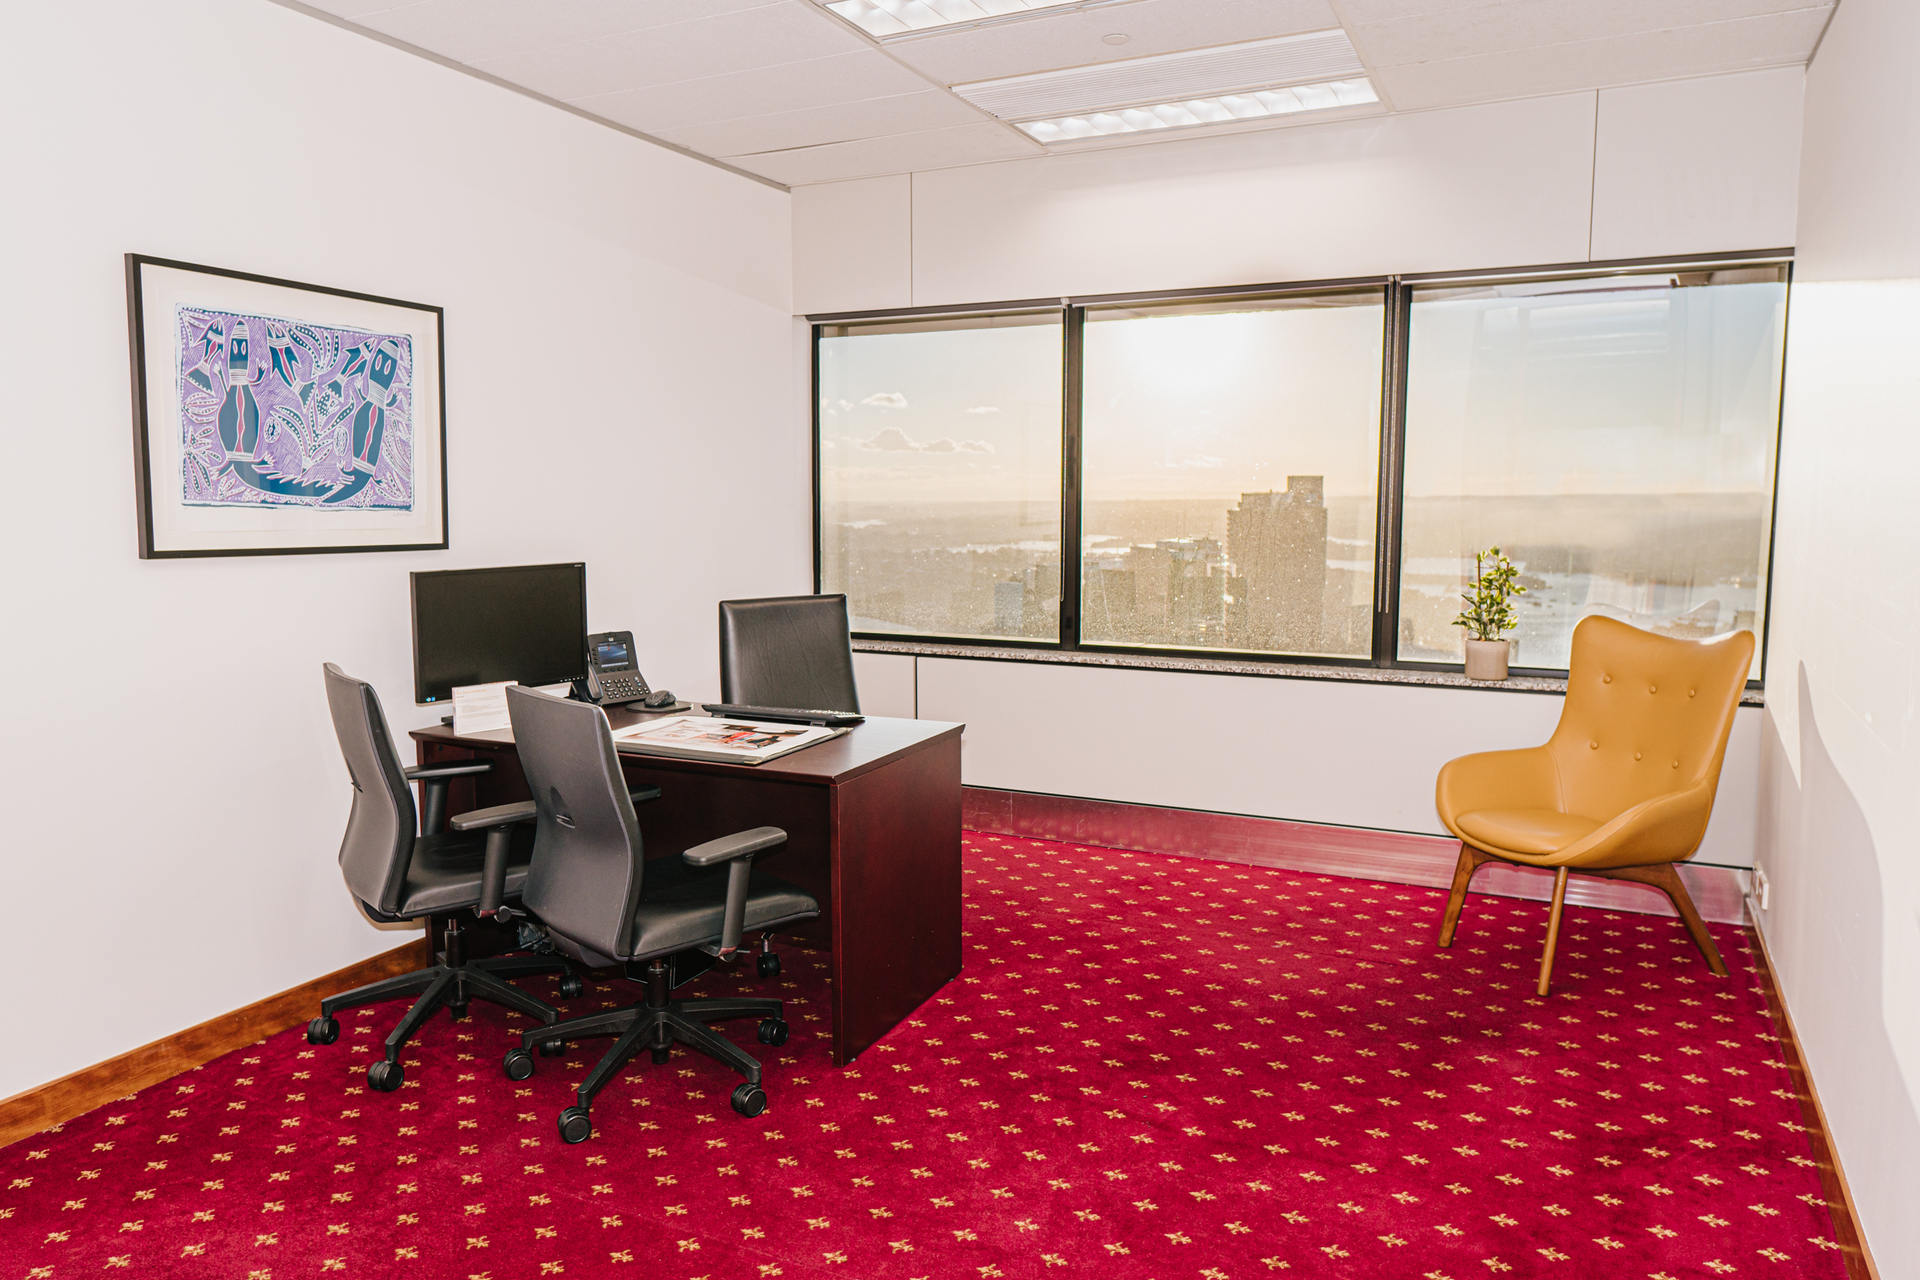 Modern 1-person private workspace with unlimited access to Coworking breakout areas